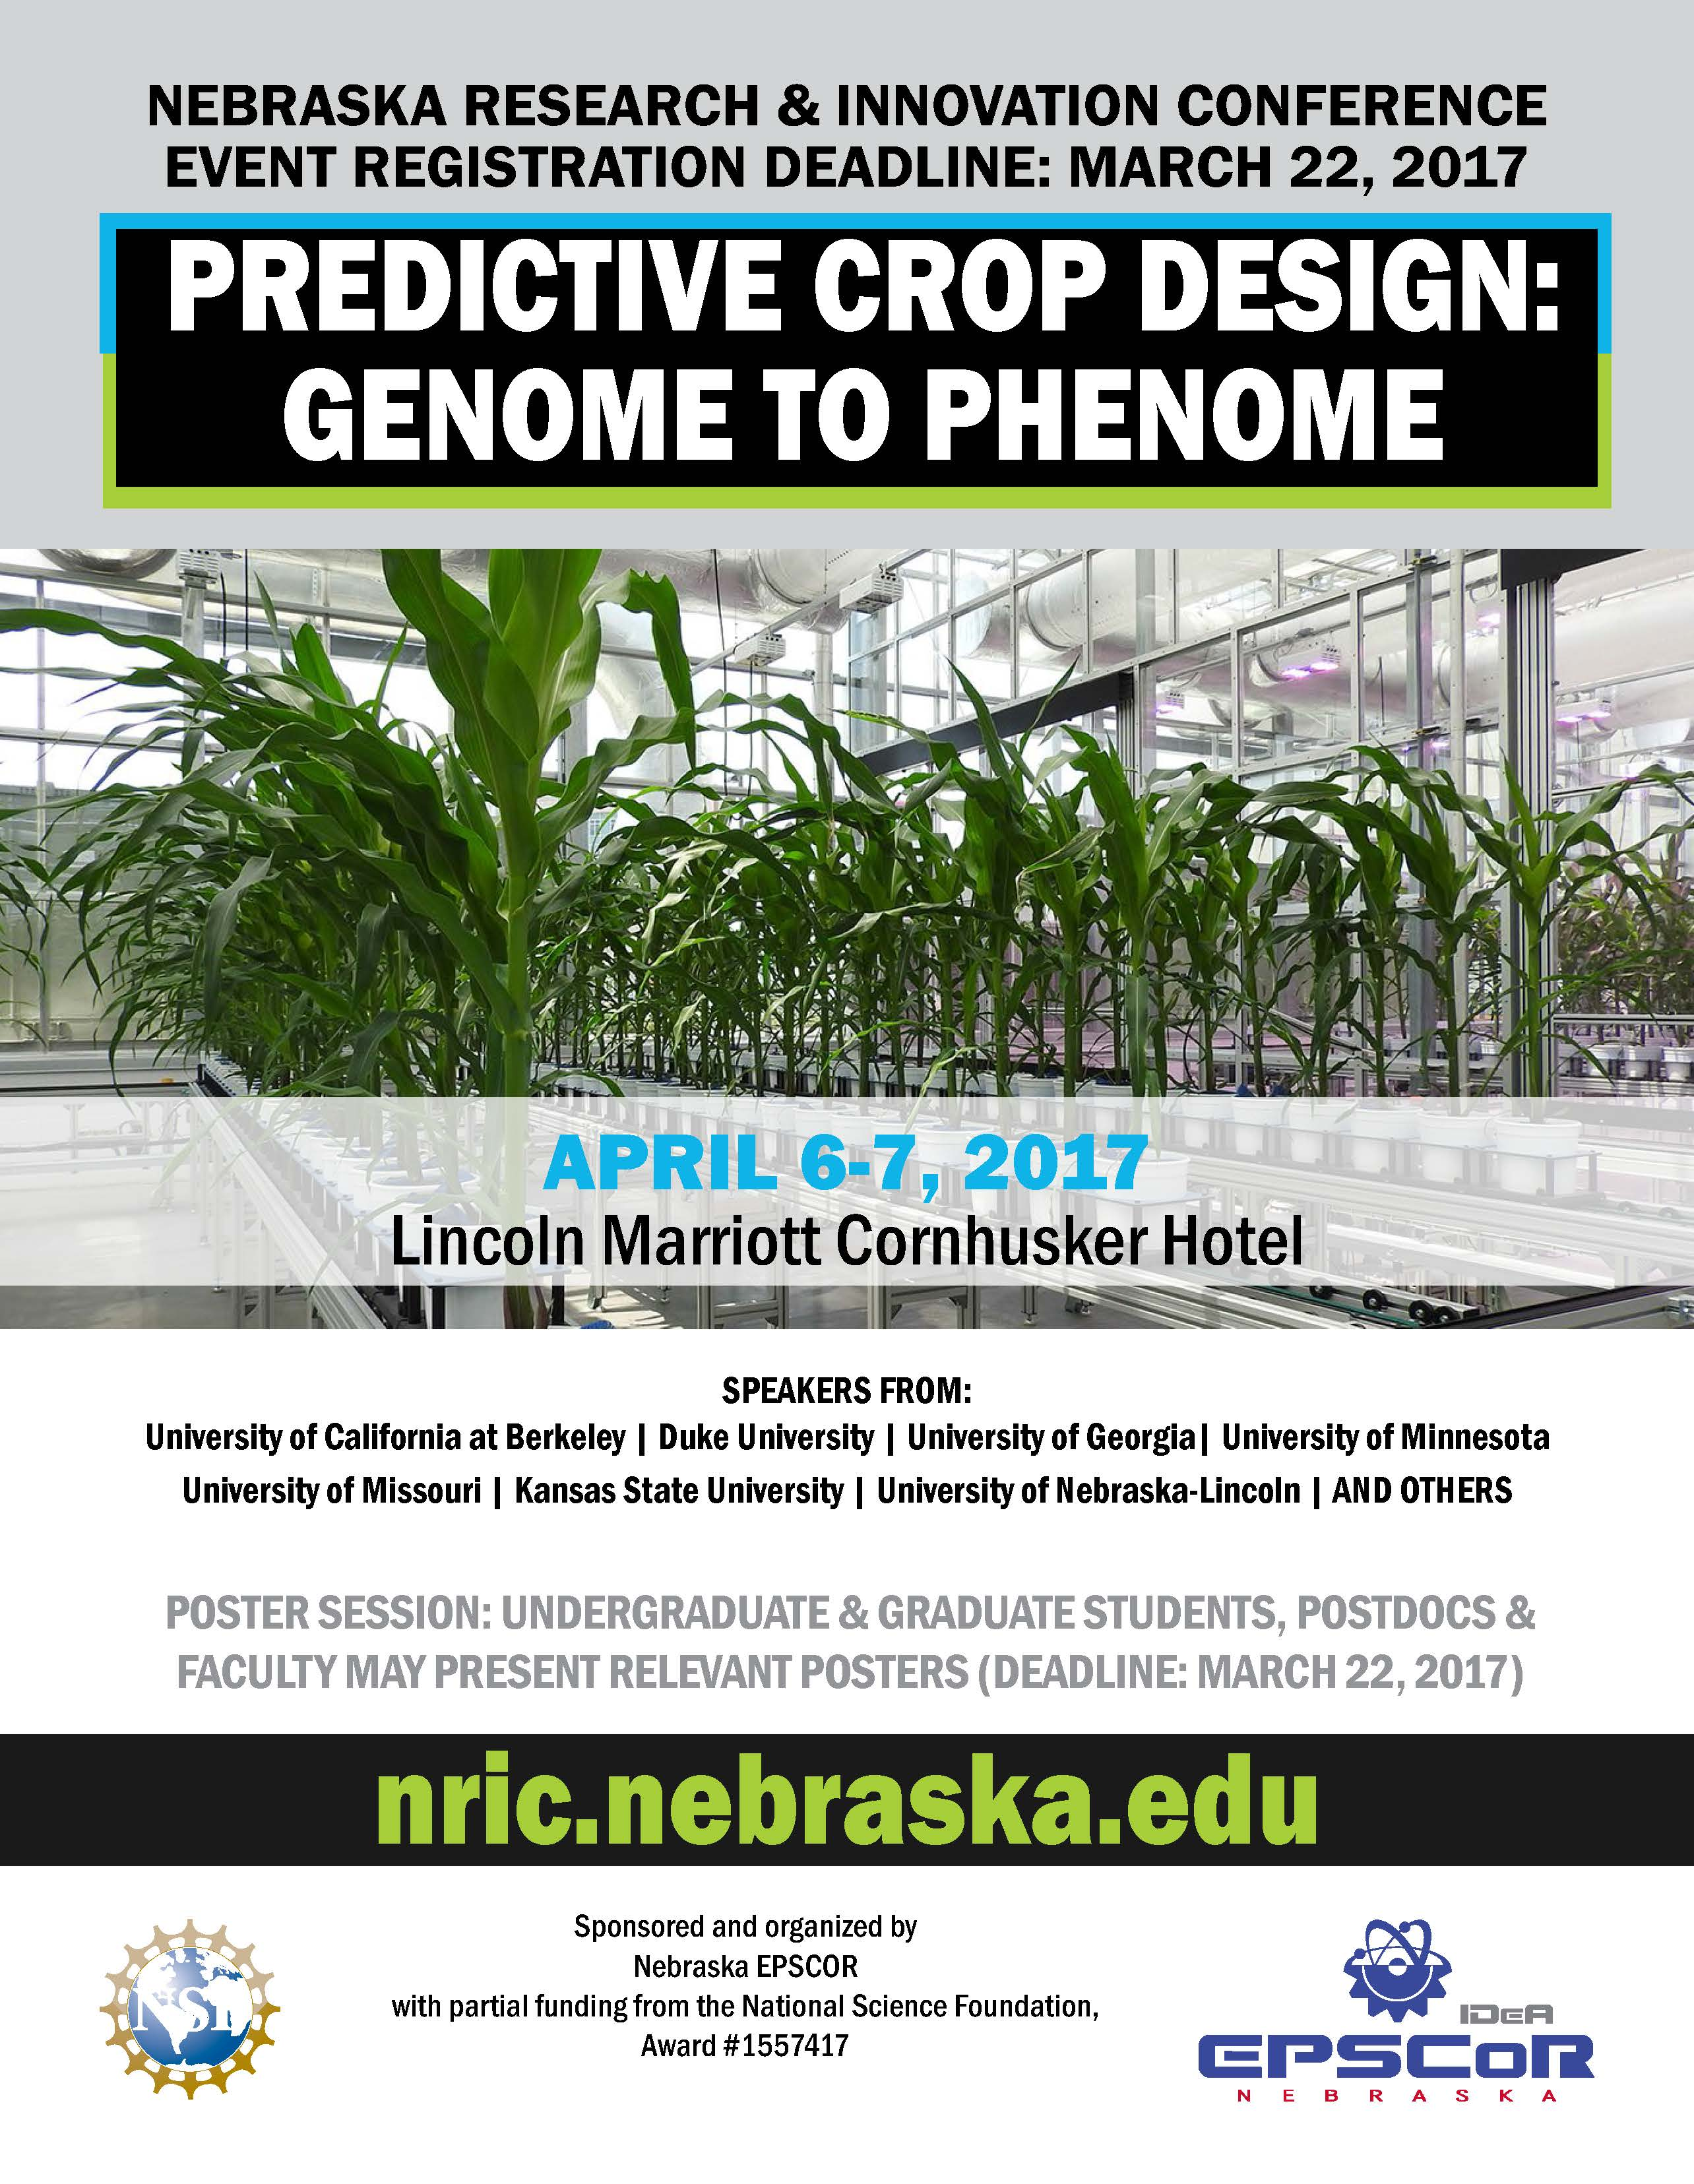 Registration is open for Predictive Crop Design: Genome to Phenome on April 6-7 in Lincoln.